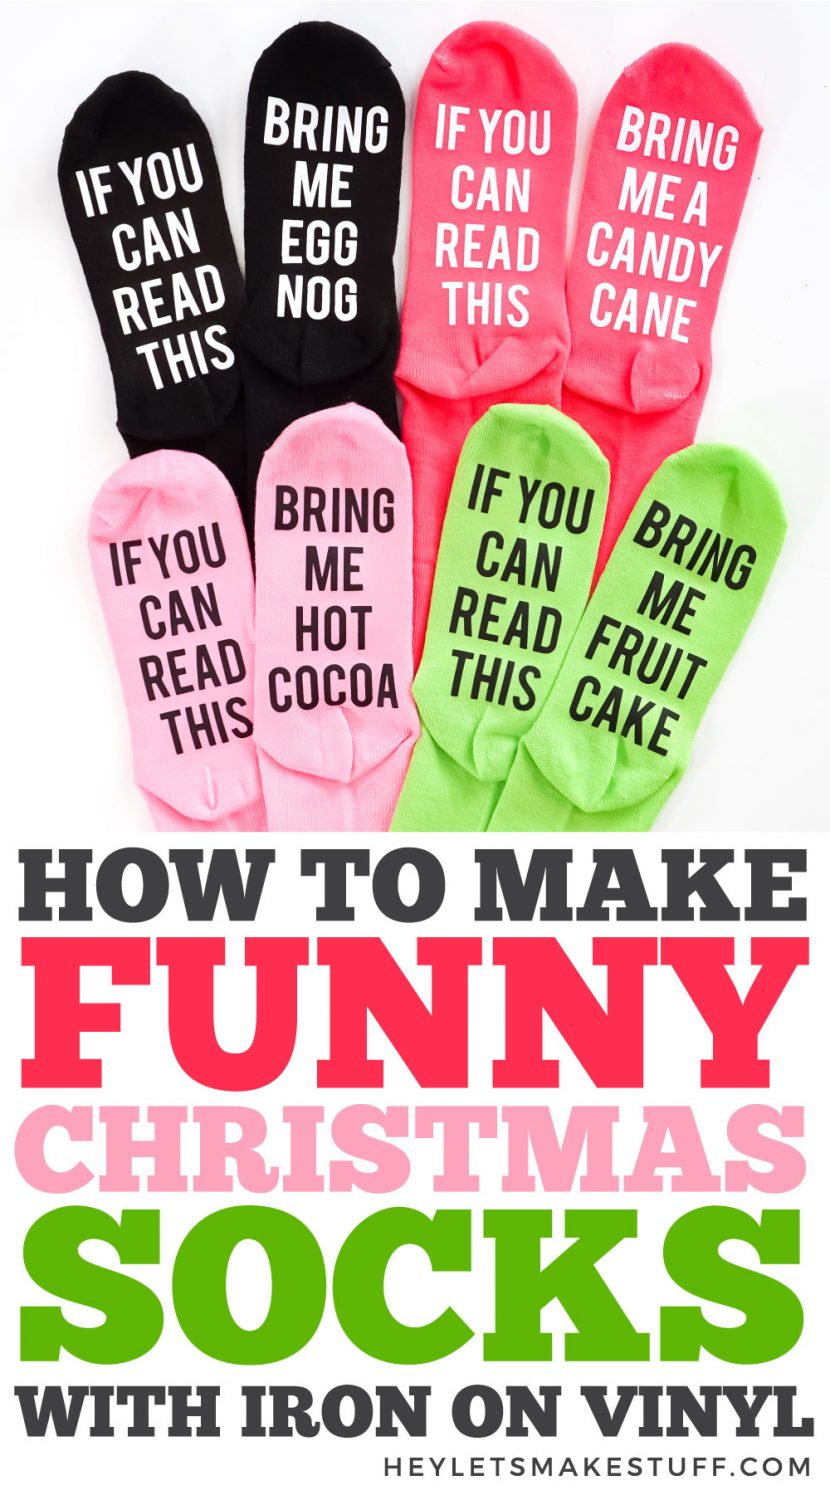 How to Make Funny Christmas Socks with Iron On Vinyl pin image